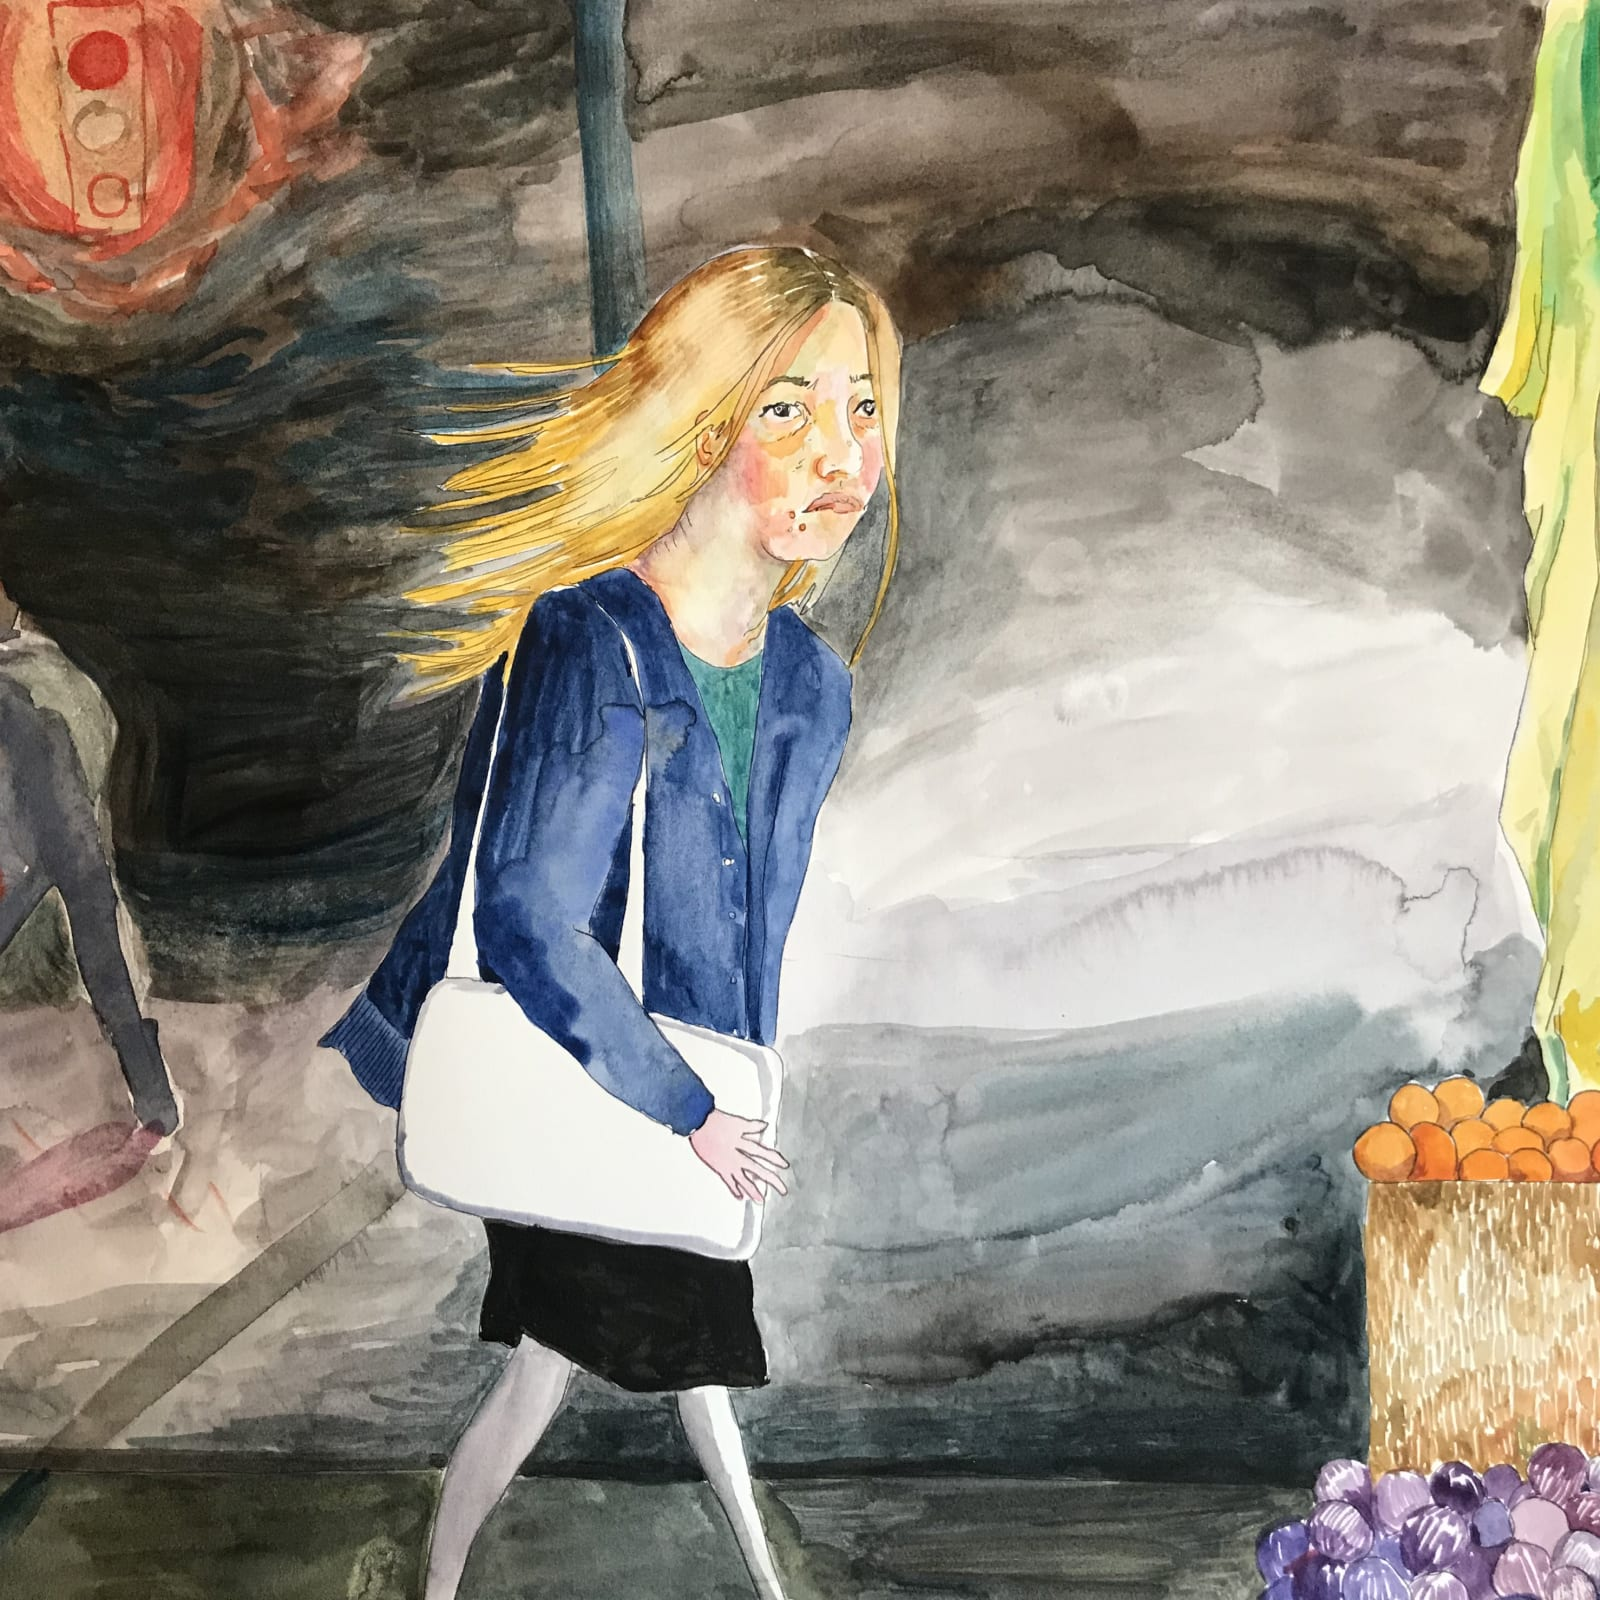 Maggie Ellis  Girl at The Fruit Stand, 2020  Watercolor on paper  11 x 14 in (27.9 x 35.6 cm)